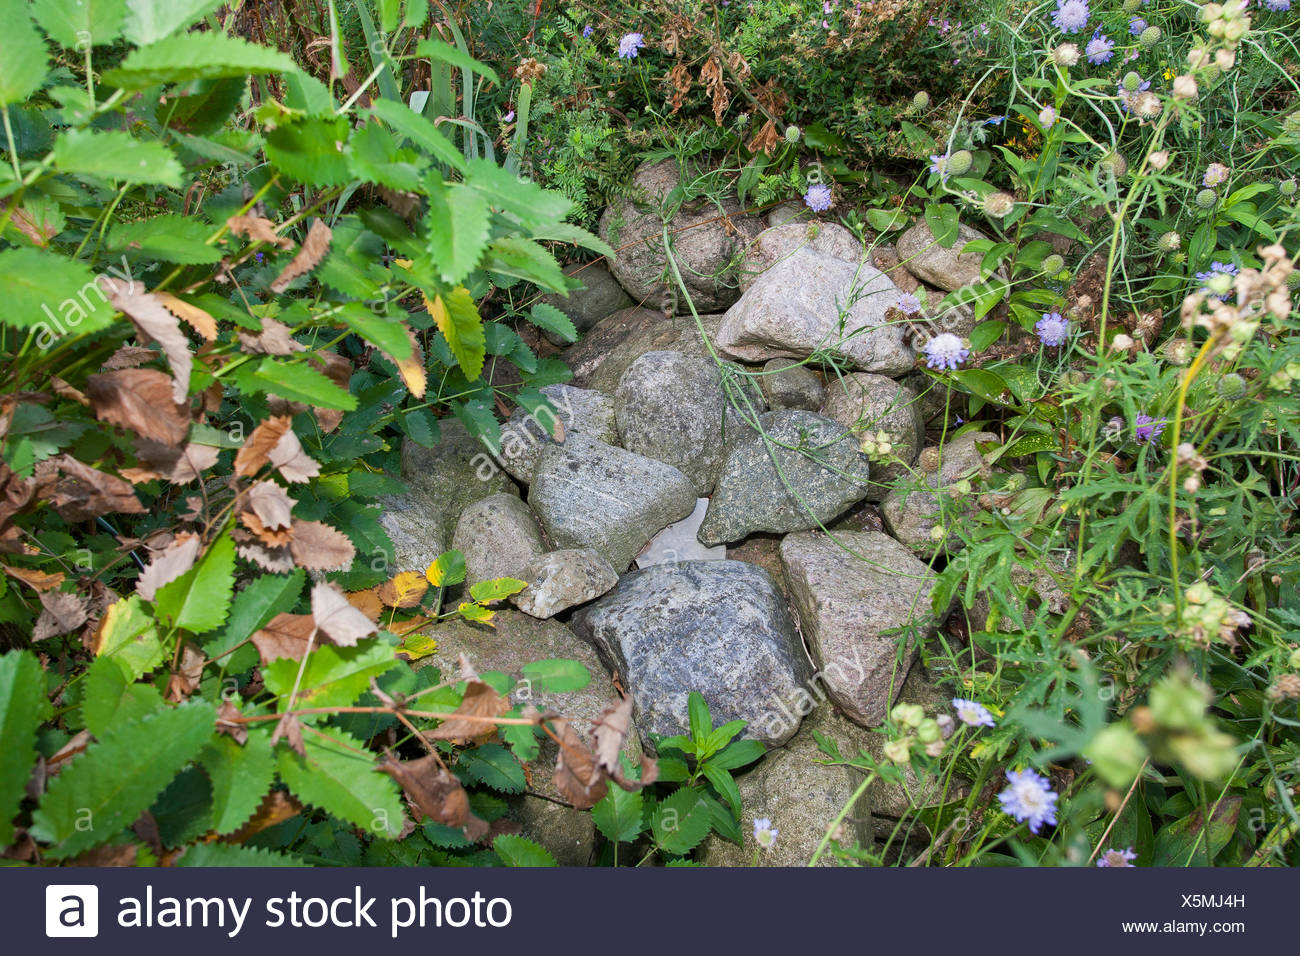 natural stones on a pile of stones, as shelter, habitat for animals in the garden, Germany - Stock Image